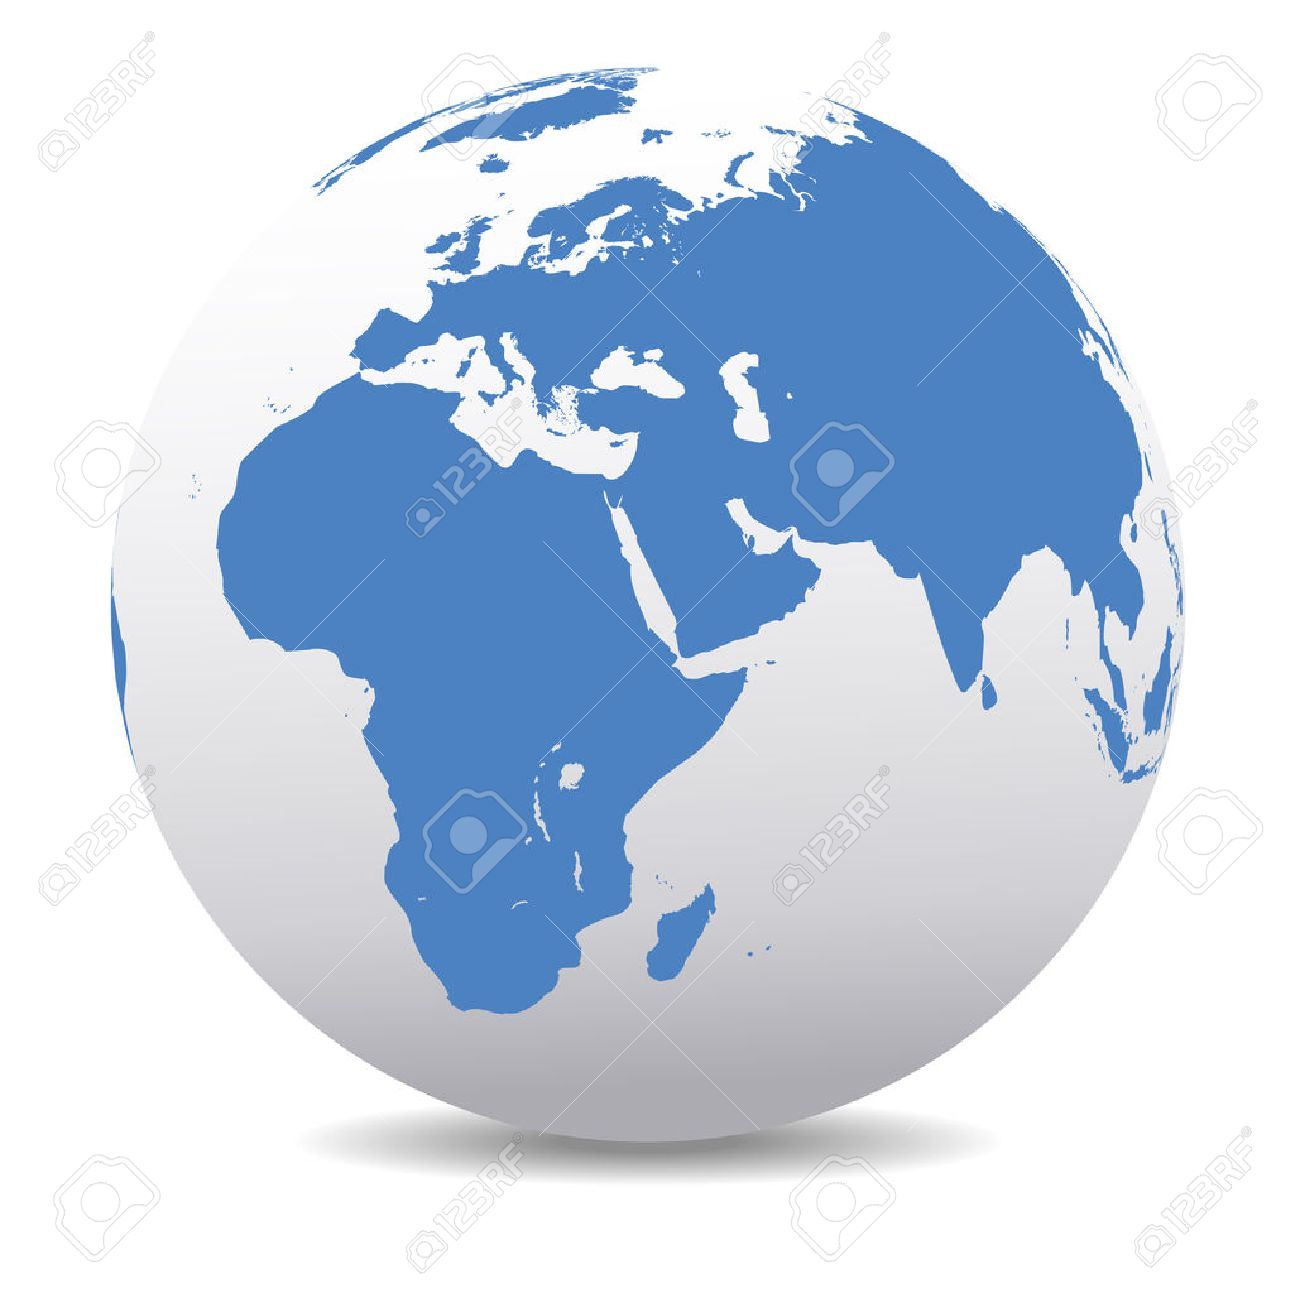 Africa, Middle East, Arabia and India Global World - 33345737